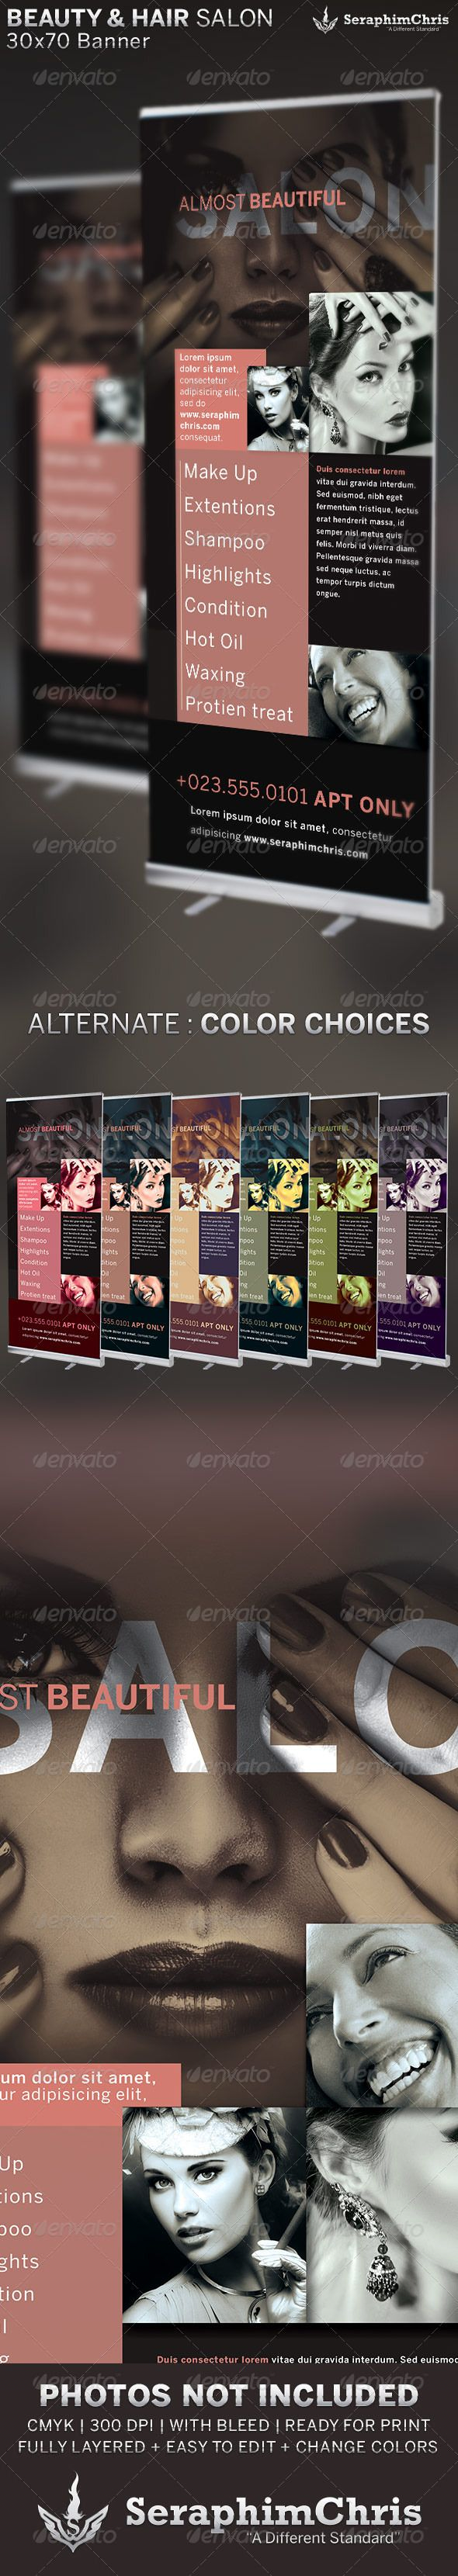 Beauty and Hair Salon Banner Template is designed for startups, small businesses...